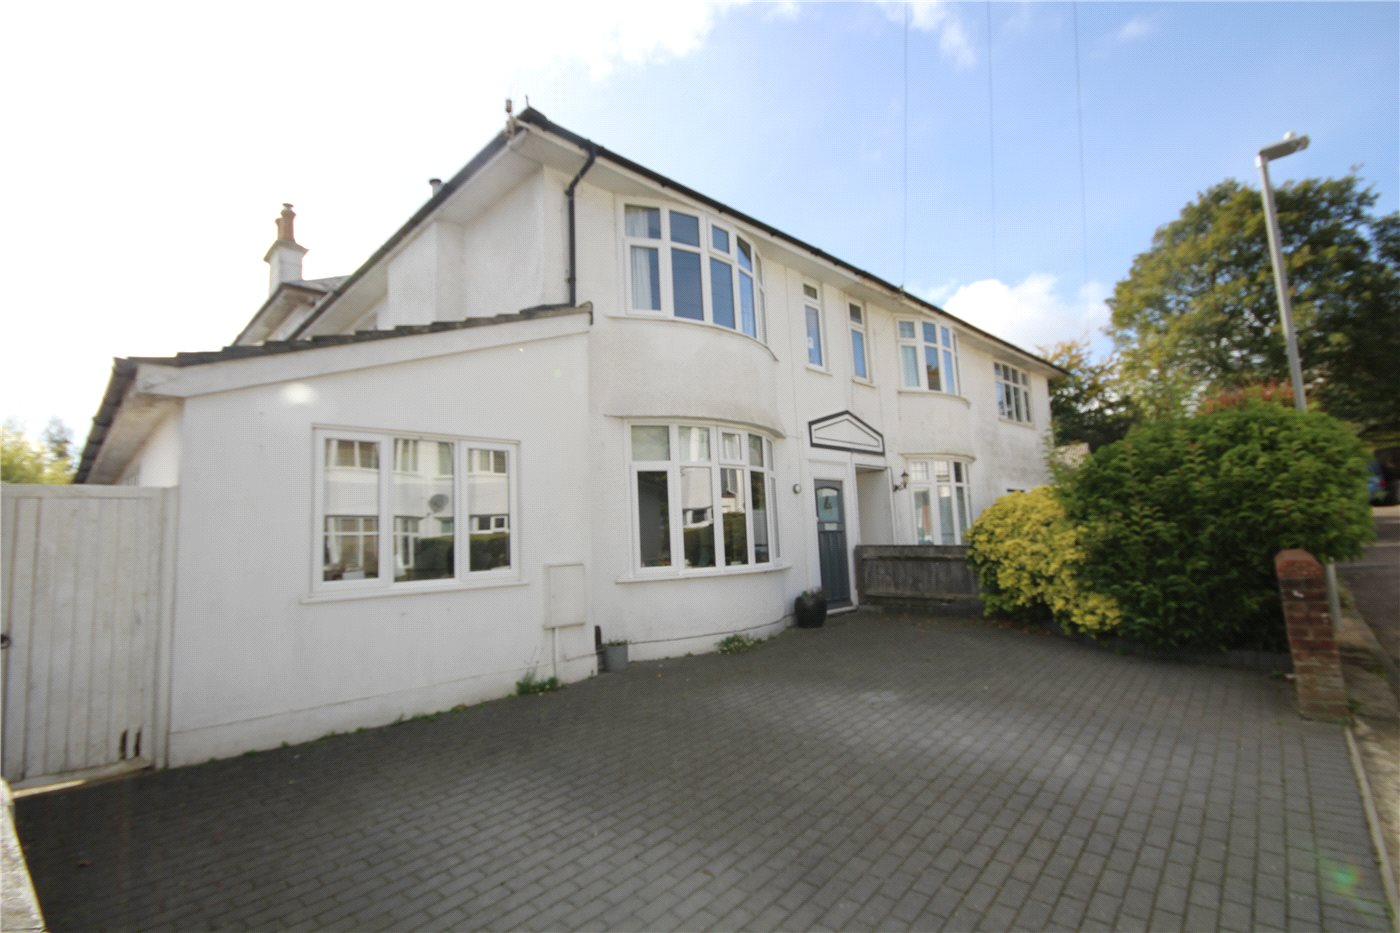 4 Bedrooms Semi Detached House for sale in Mansfield Avenue, Lower Parkstone, Poole, Dorset, BH14